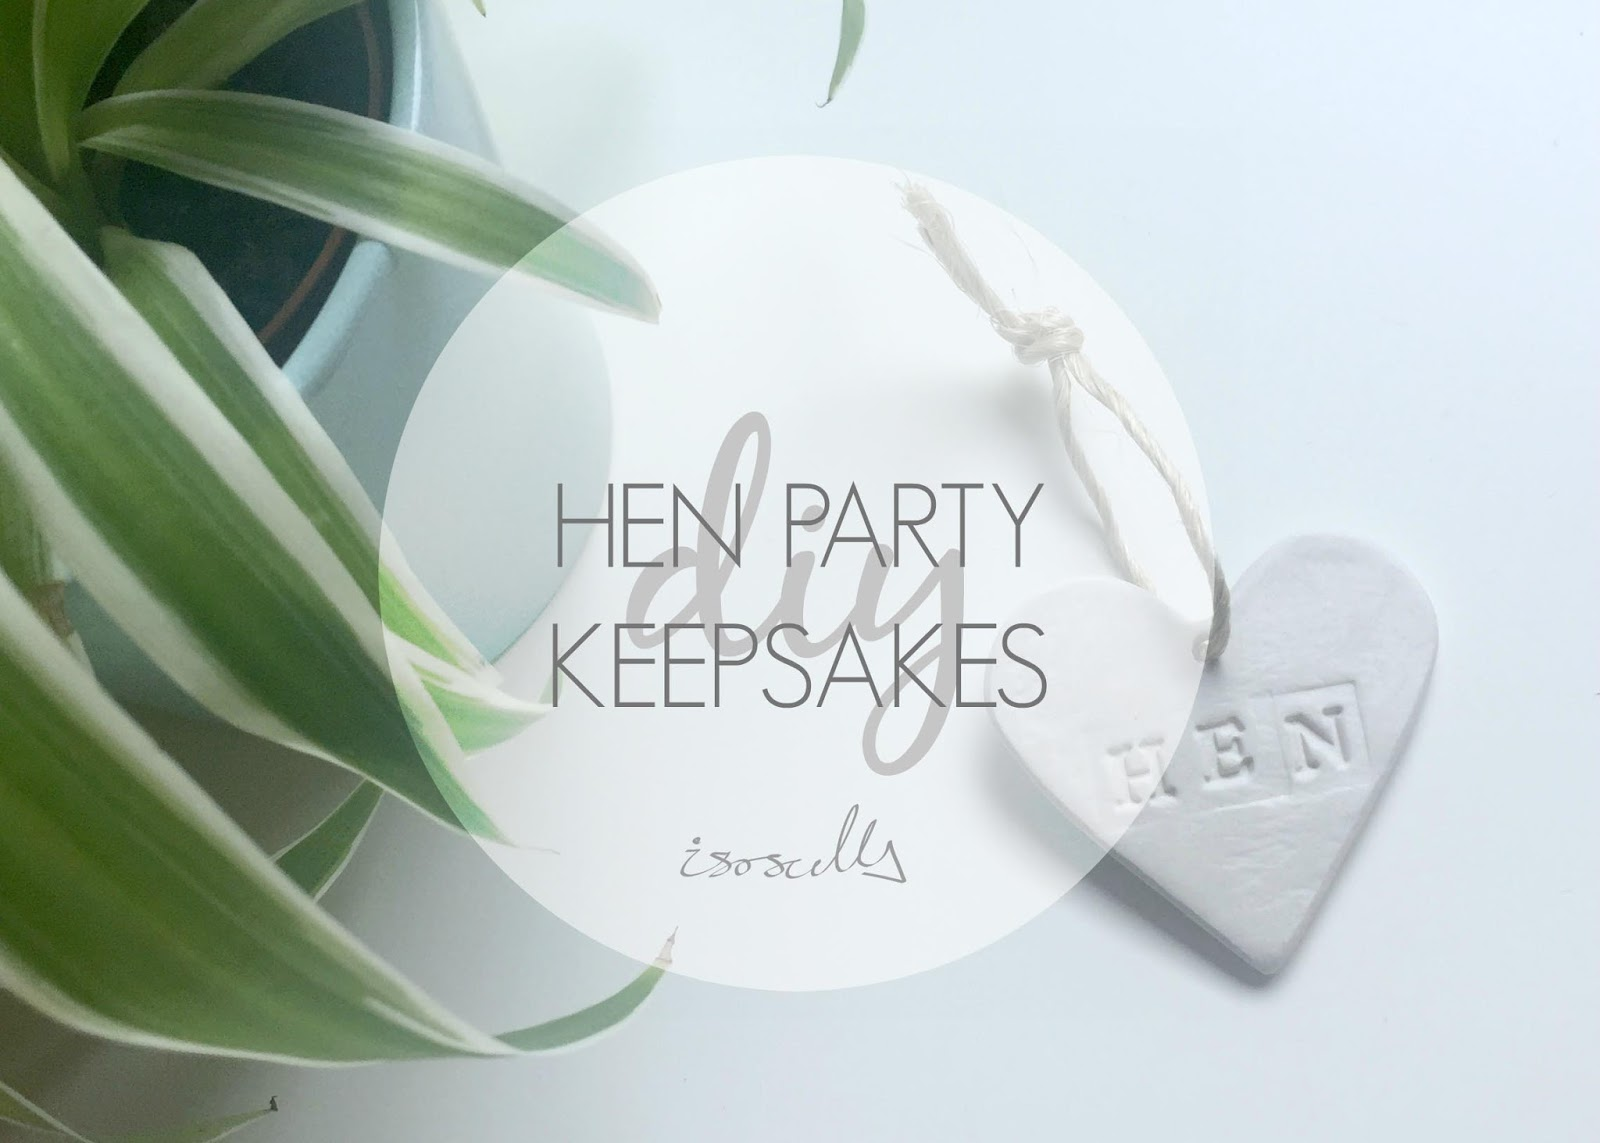 DIY Hen Party Keepsakes by Isoscella